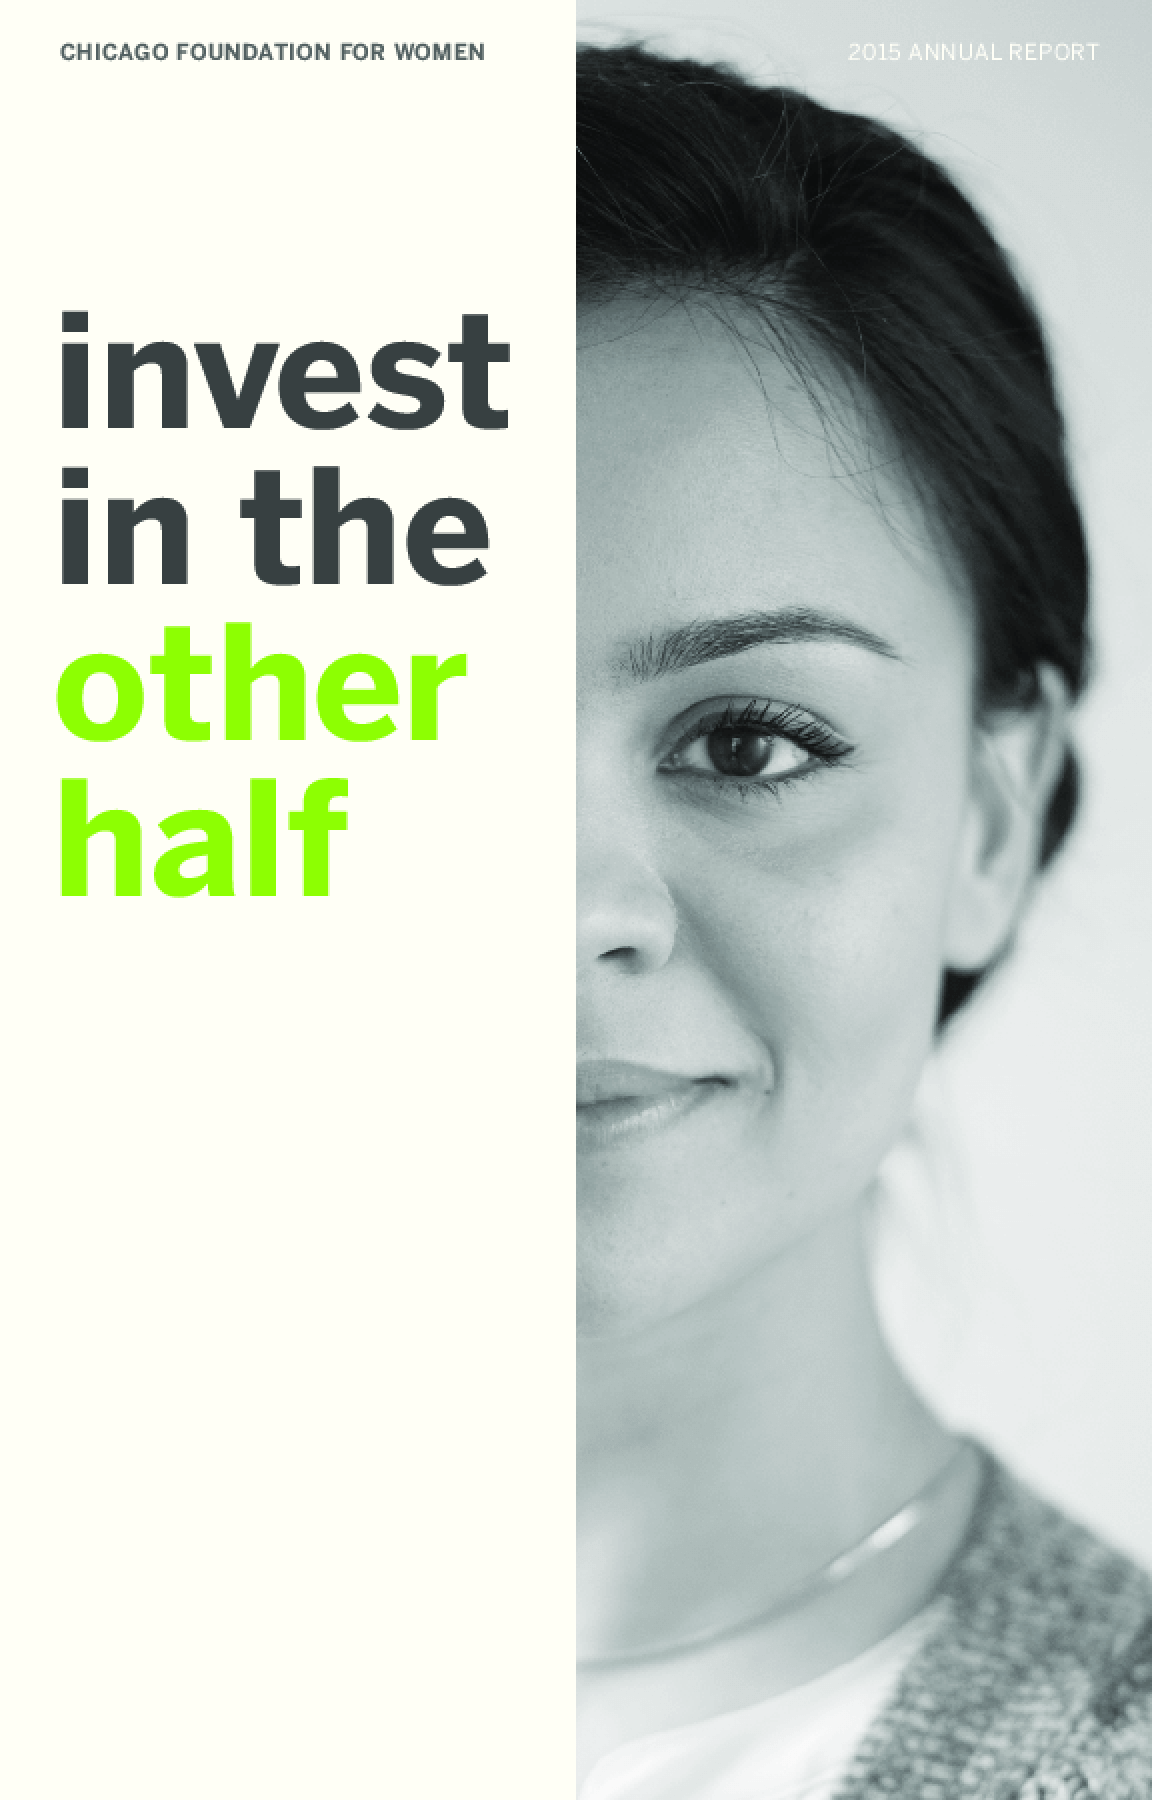 Chicago Foundation for Women 2015 Annual Report